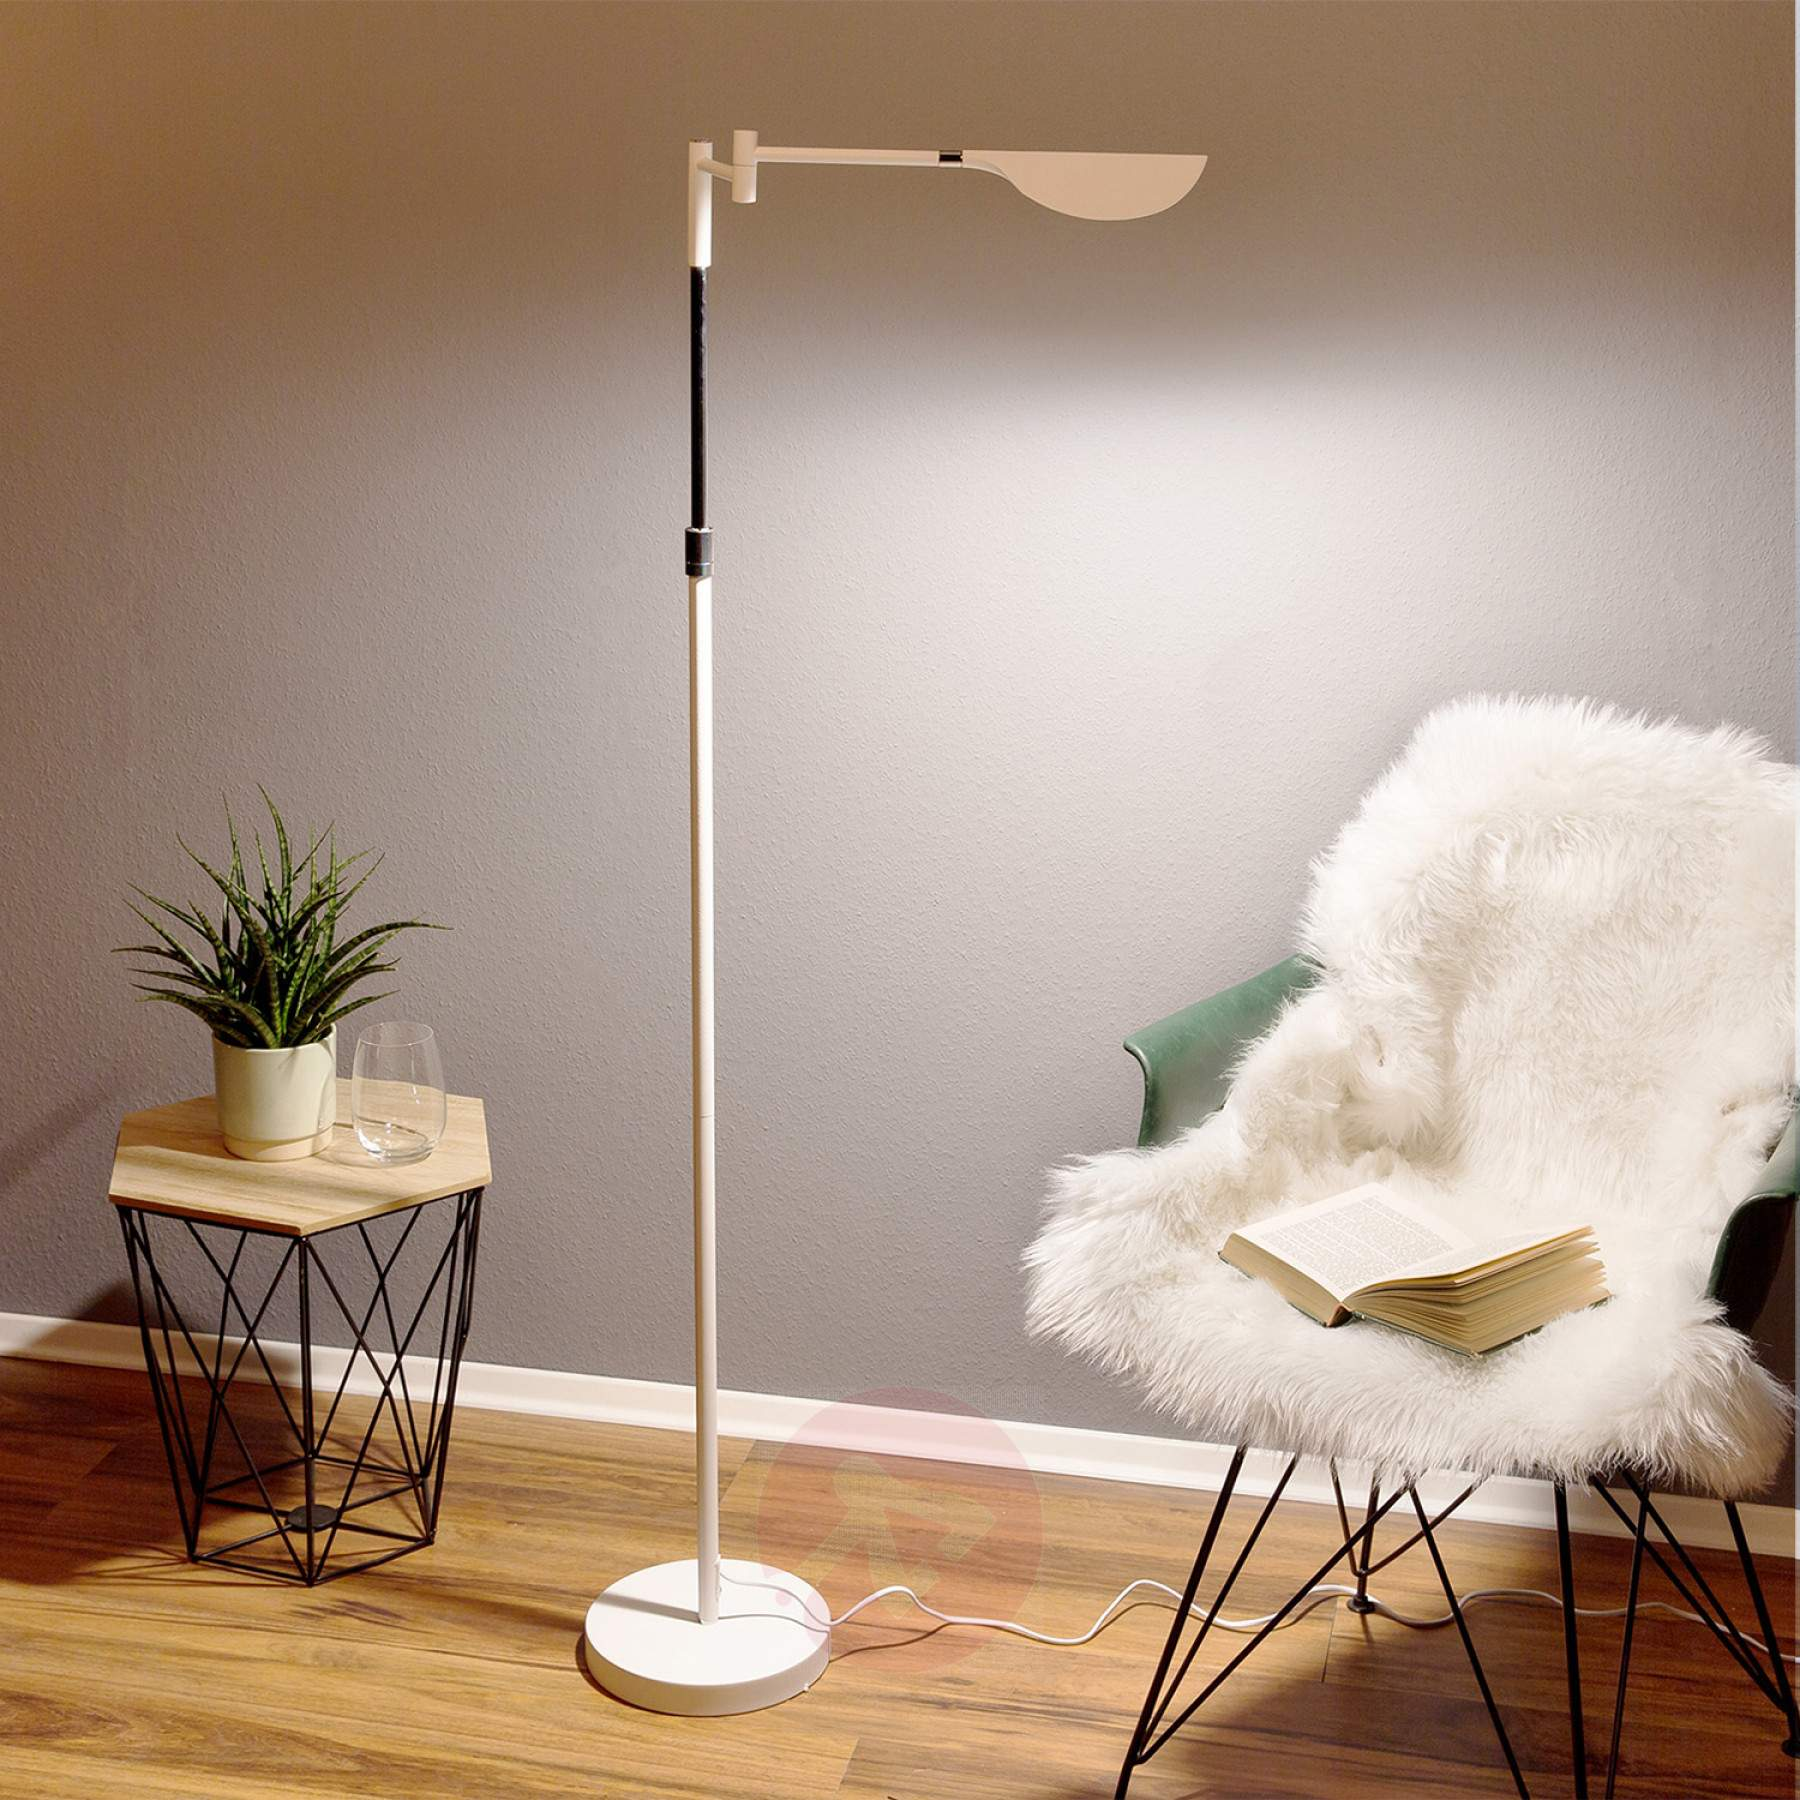 Full Size of Stehlampe Dimmbar Led Finnley Stehlampen Wohnzimmer Schlafzimmer Wohnzimmer Stehlampe Dimmbar